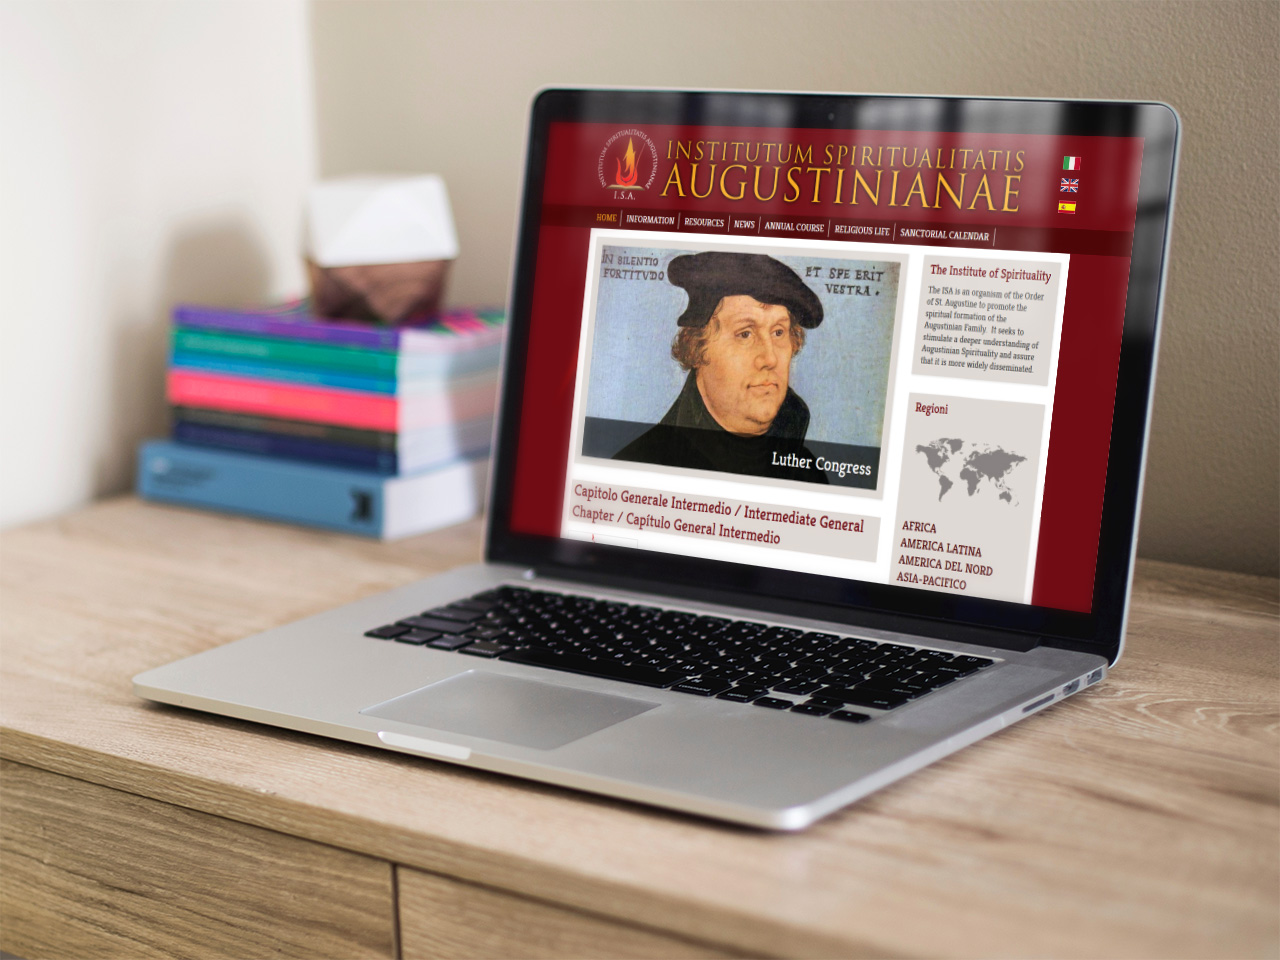 Augustinians – The Institute of Spirituality